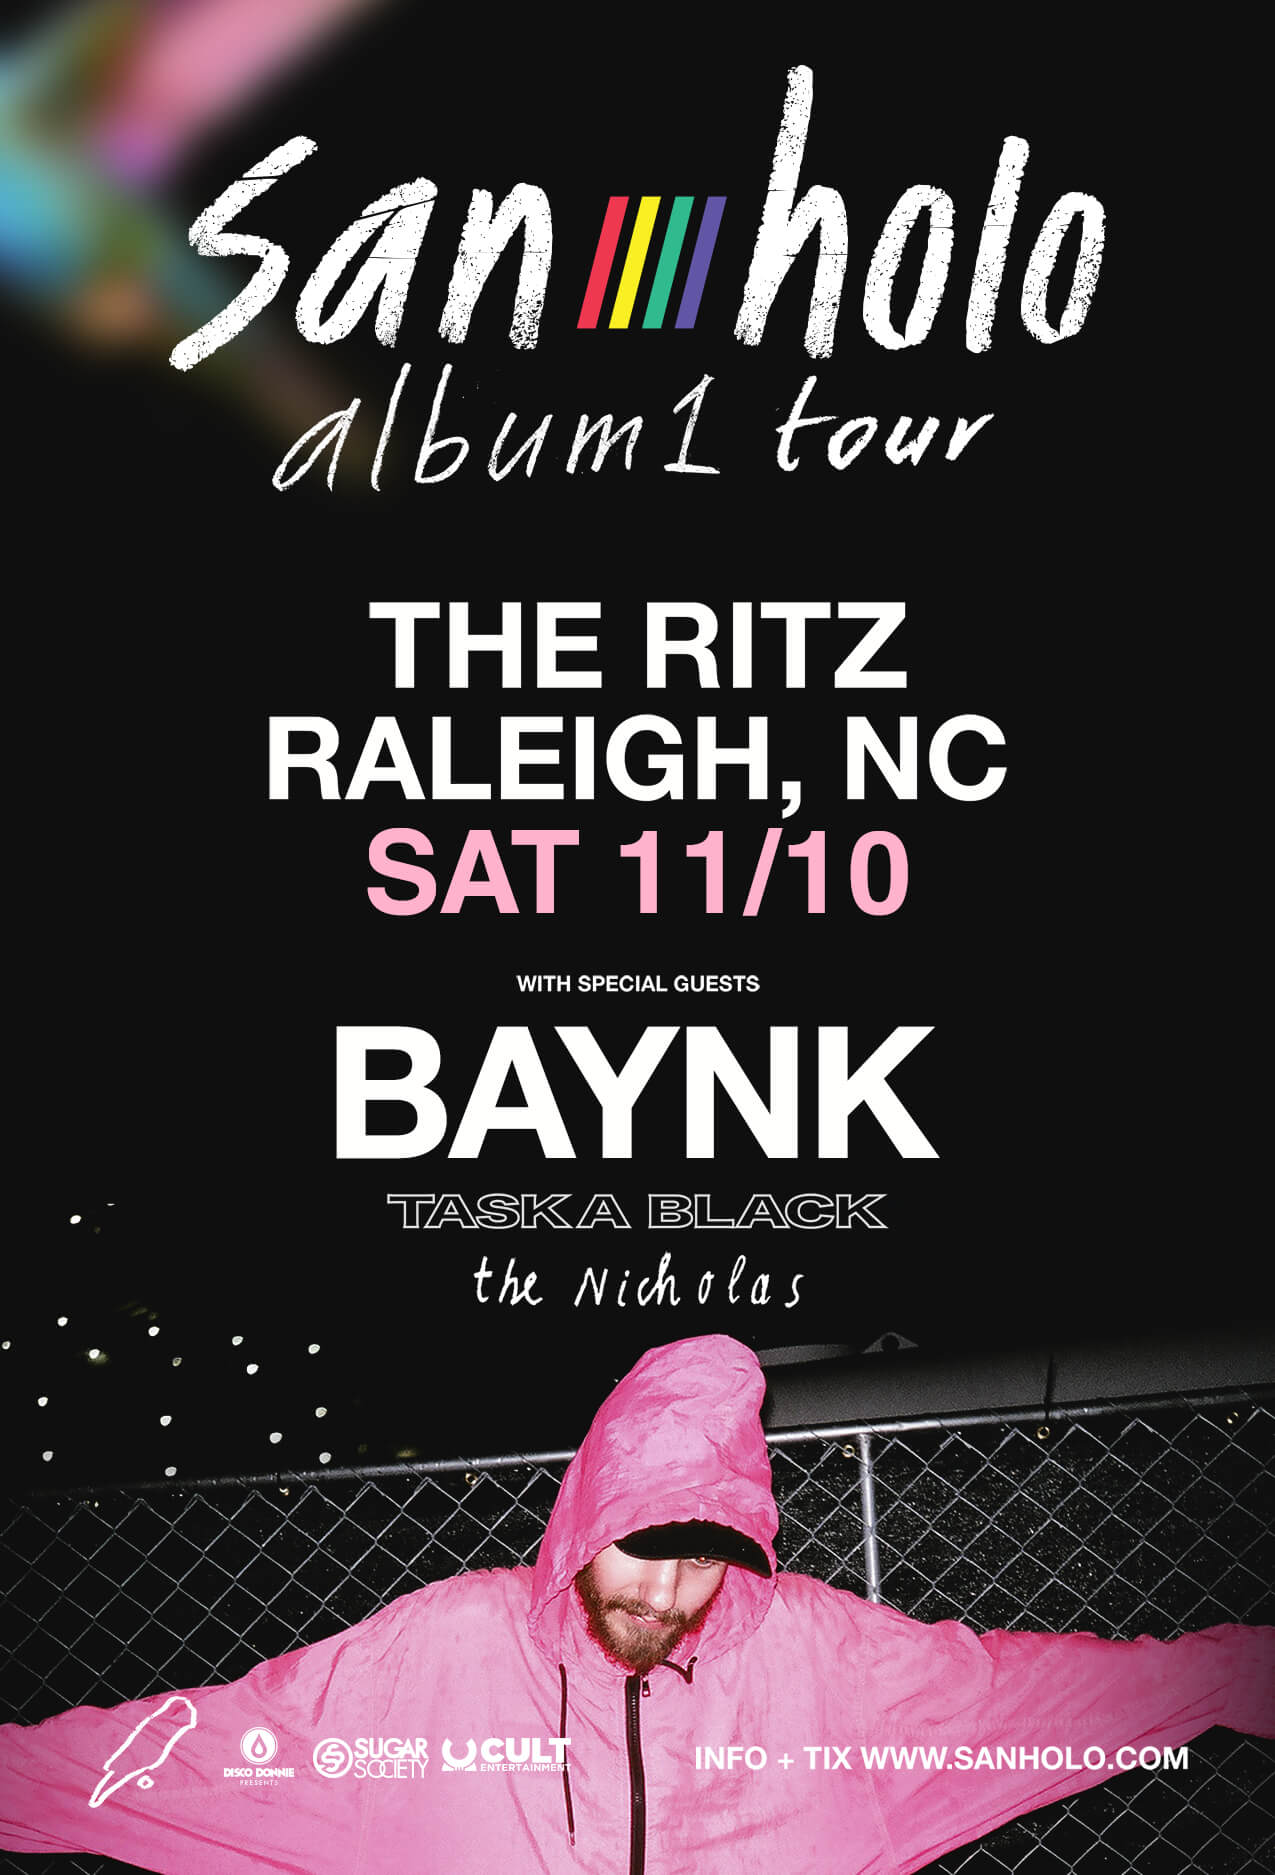 San Holo, Baynk, Taska Black, The Nicholas in Raleigh